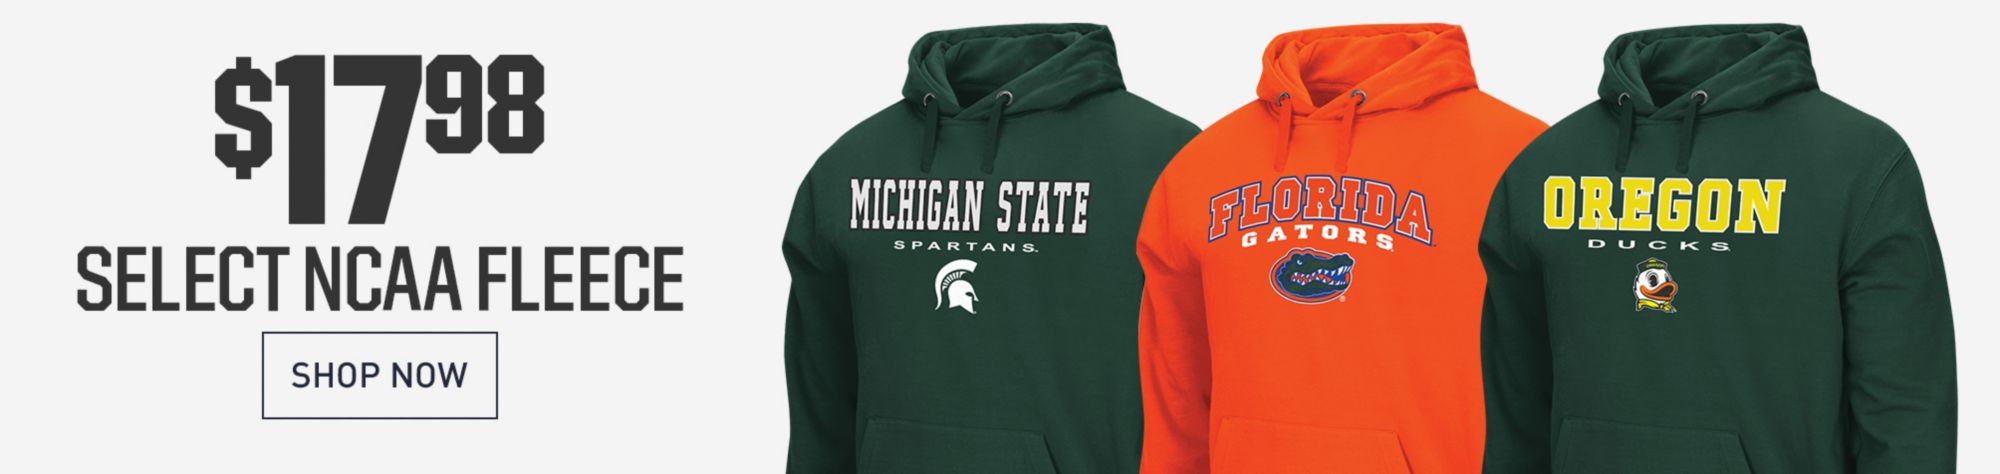 $17.98 NCAA Performance Hoodies